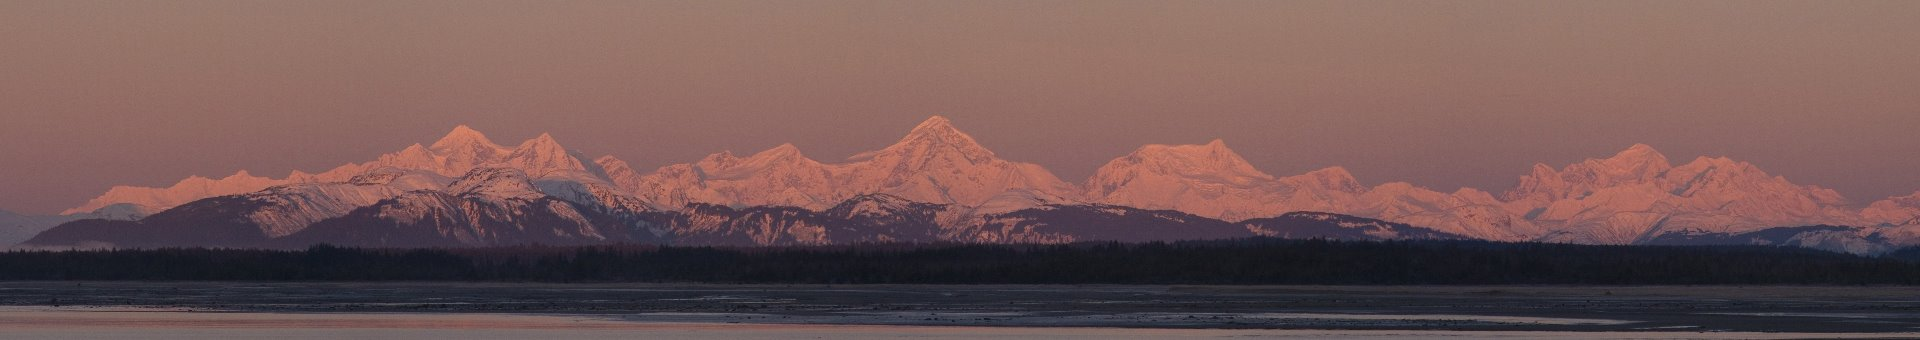 Lituya Mountain, Mt. Crillon, Mt. Bertha and Mt. Fairweather